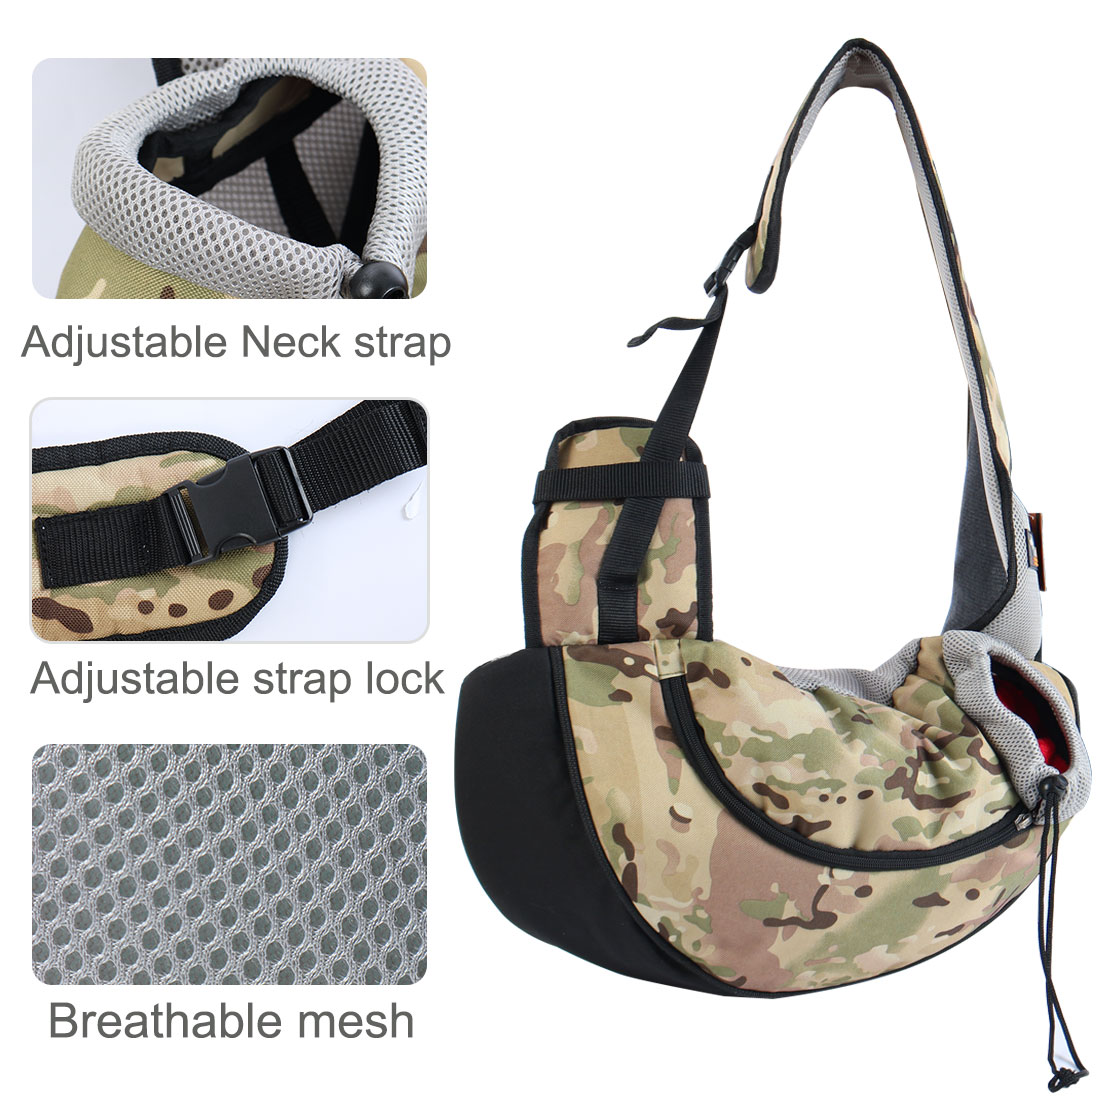 Onding Authorized Pet Dog Carrier Single Shoulder Backpack Army Green Camo - image 4 of 8